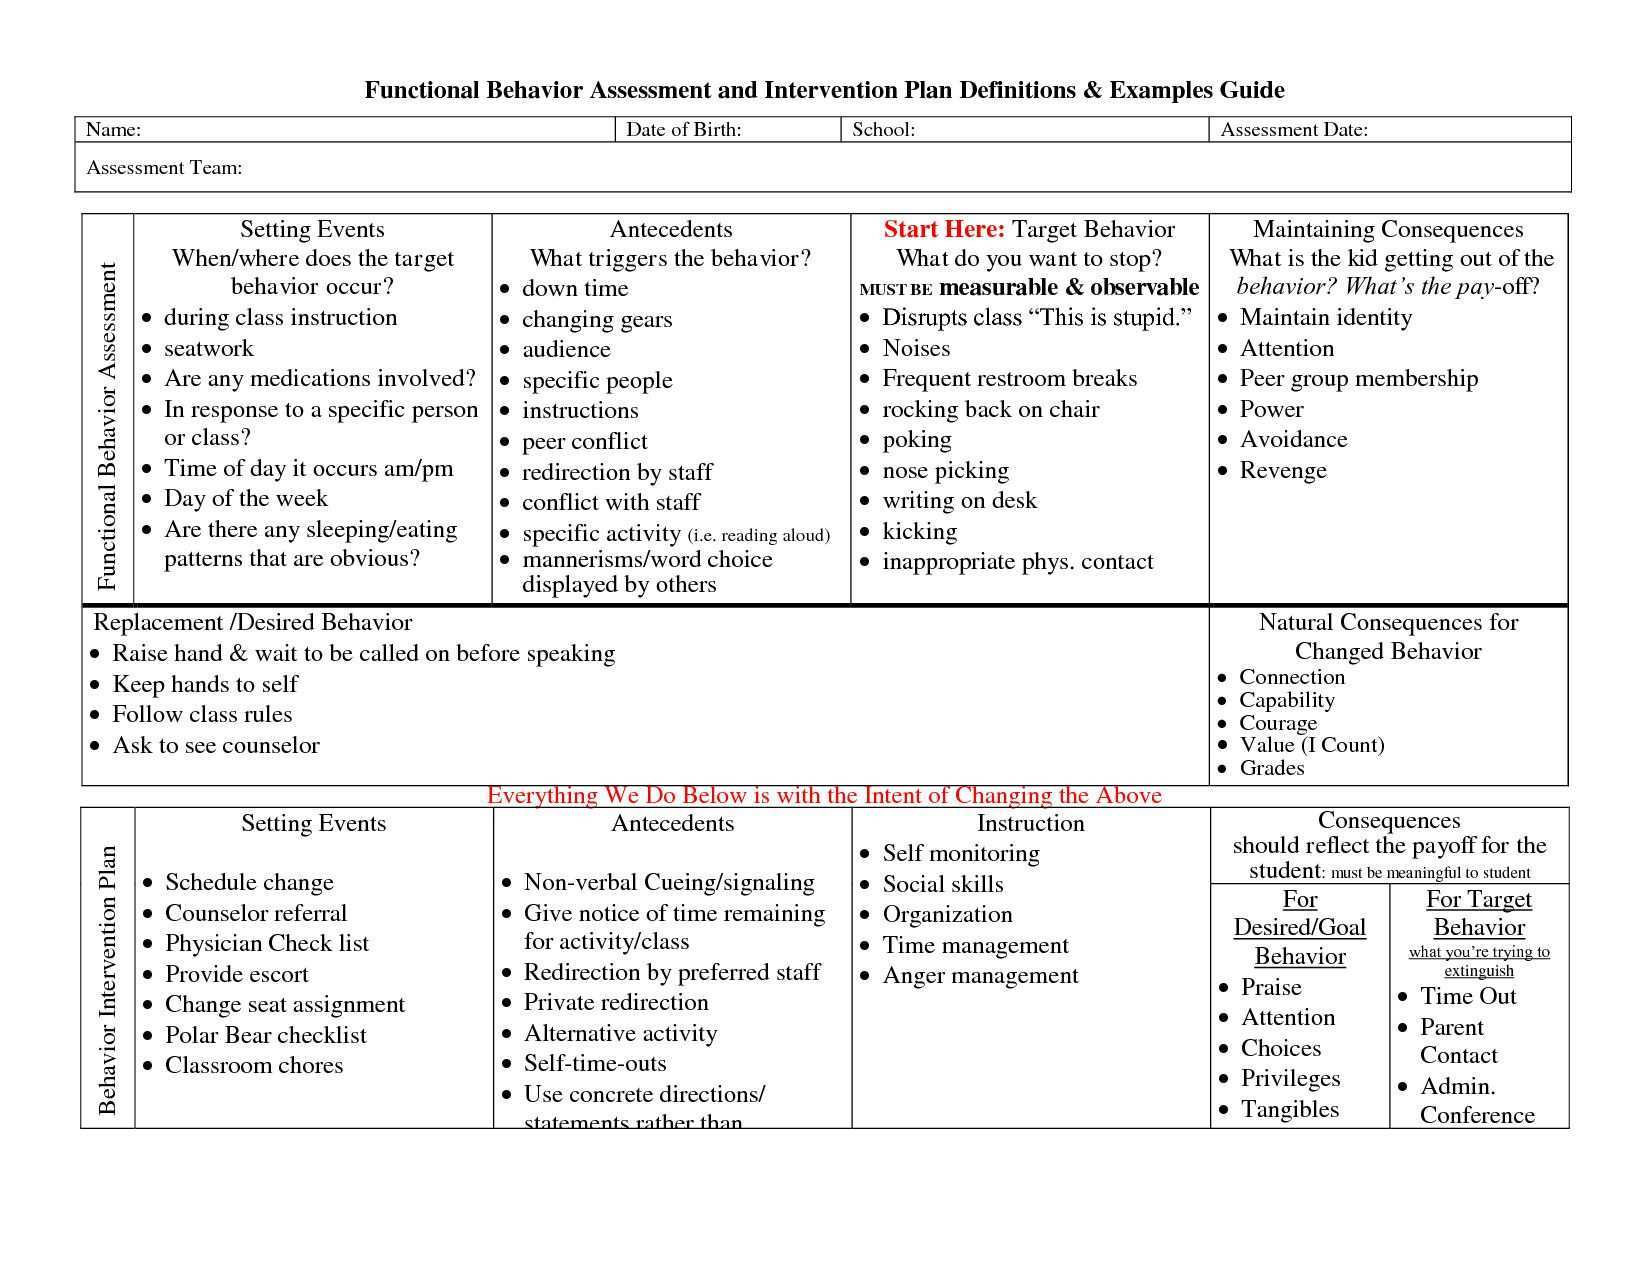 Behavior Intervention Plan Template Up To Date 012 Plan Template Behaviour Astoundi Behavior Intervention Plan Behavior Interventions Positive Behavior Support